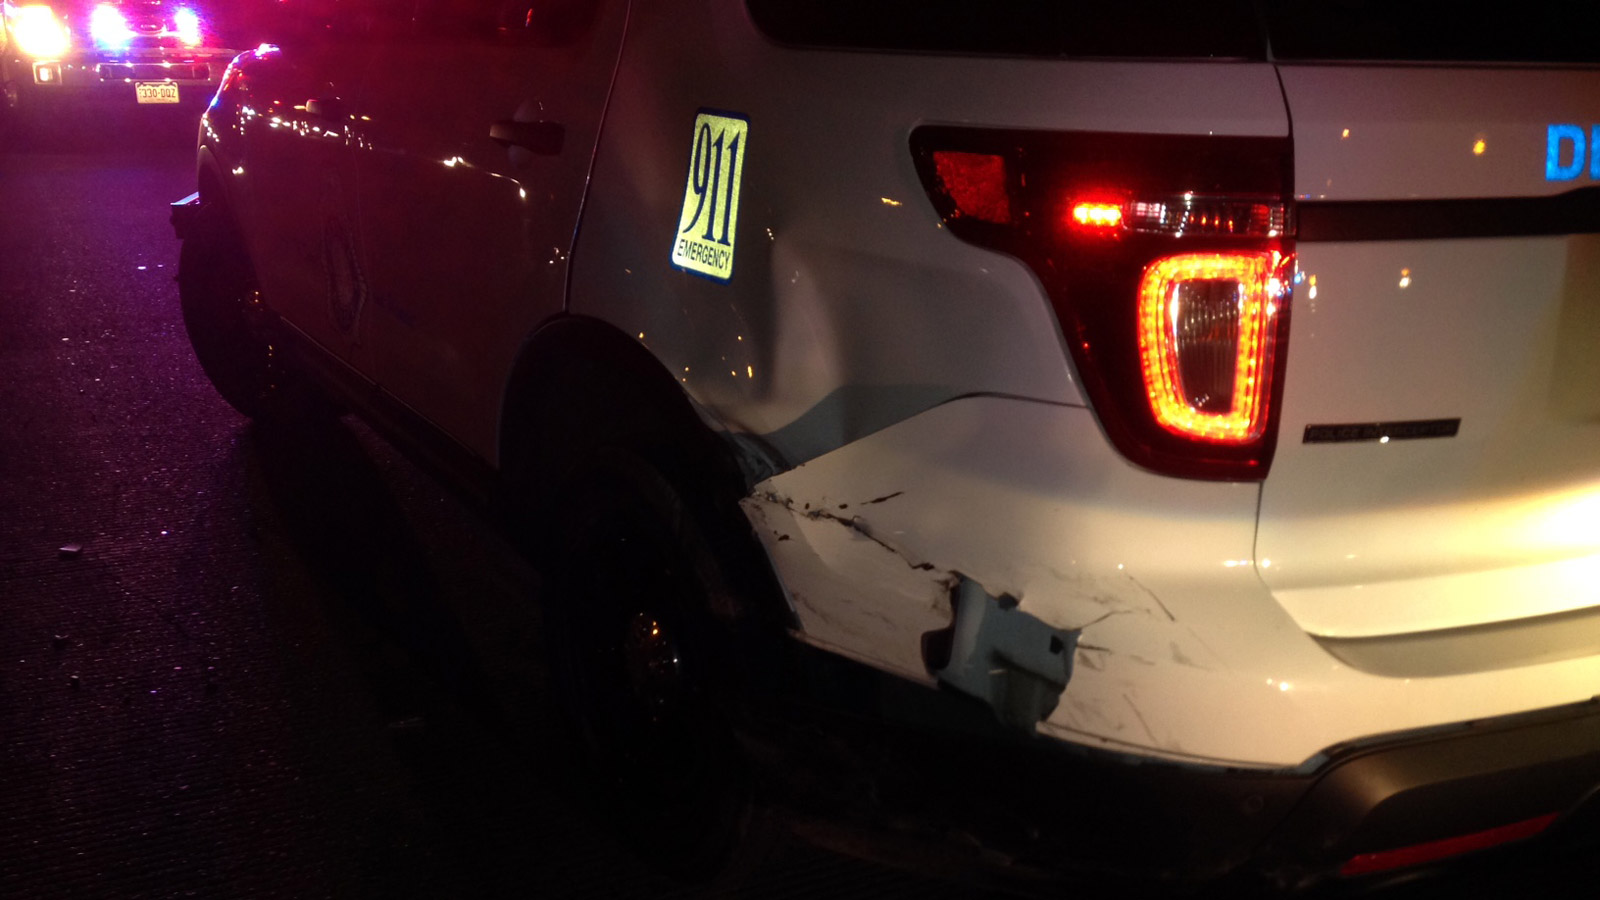 A police patrol vehicle was rammed during a traffic stop involving a stolen vehicle (credit: CBS)